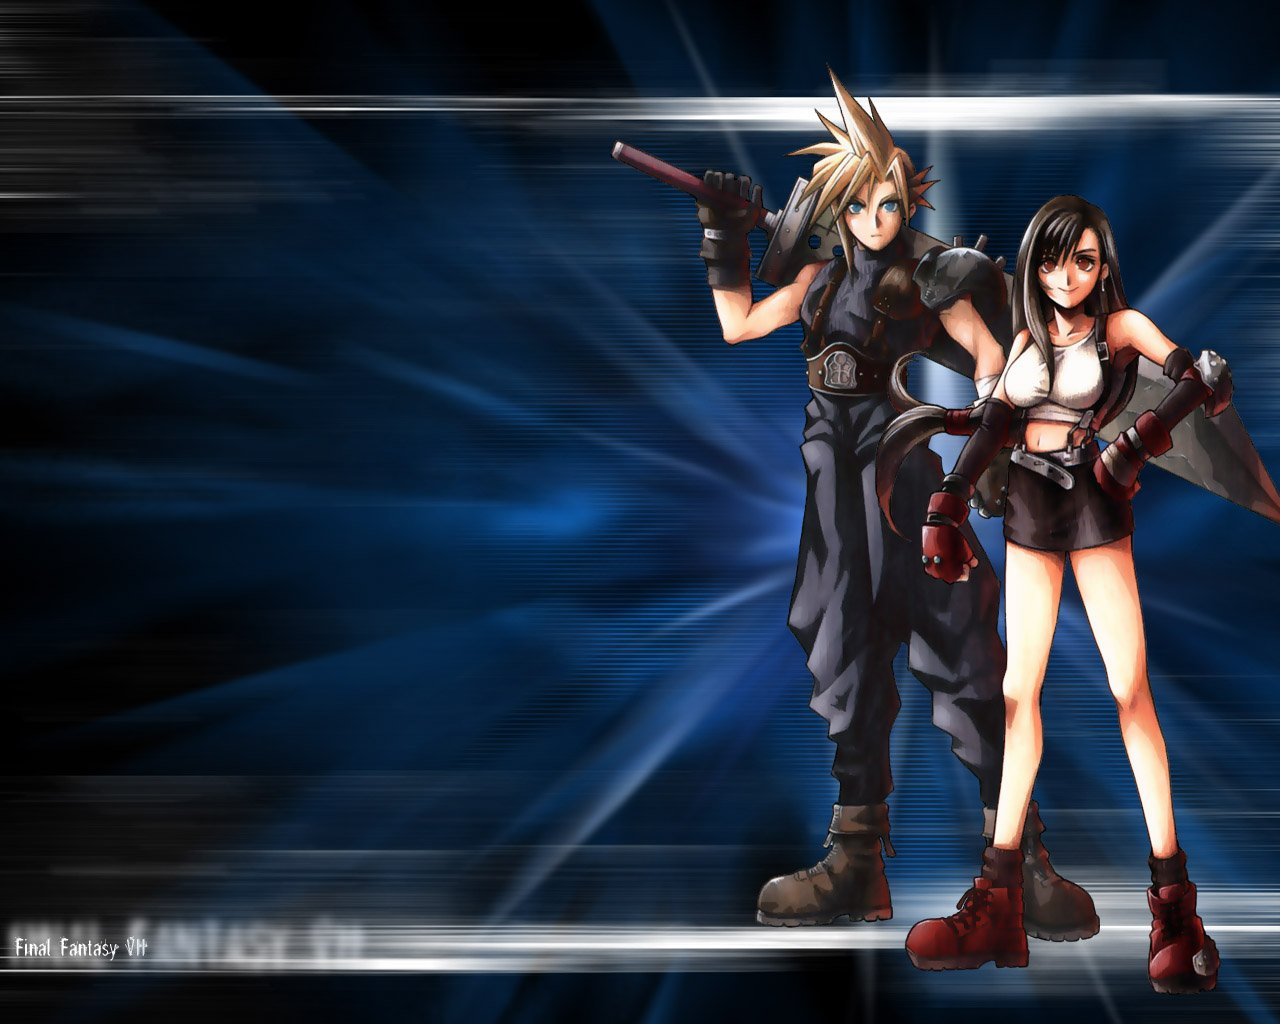 Final Fantasy 7 tifa et cloud wallpapers   W3 Directory Wallpapers 1280x1024